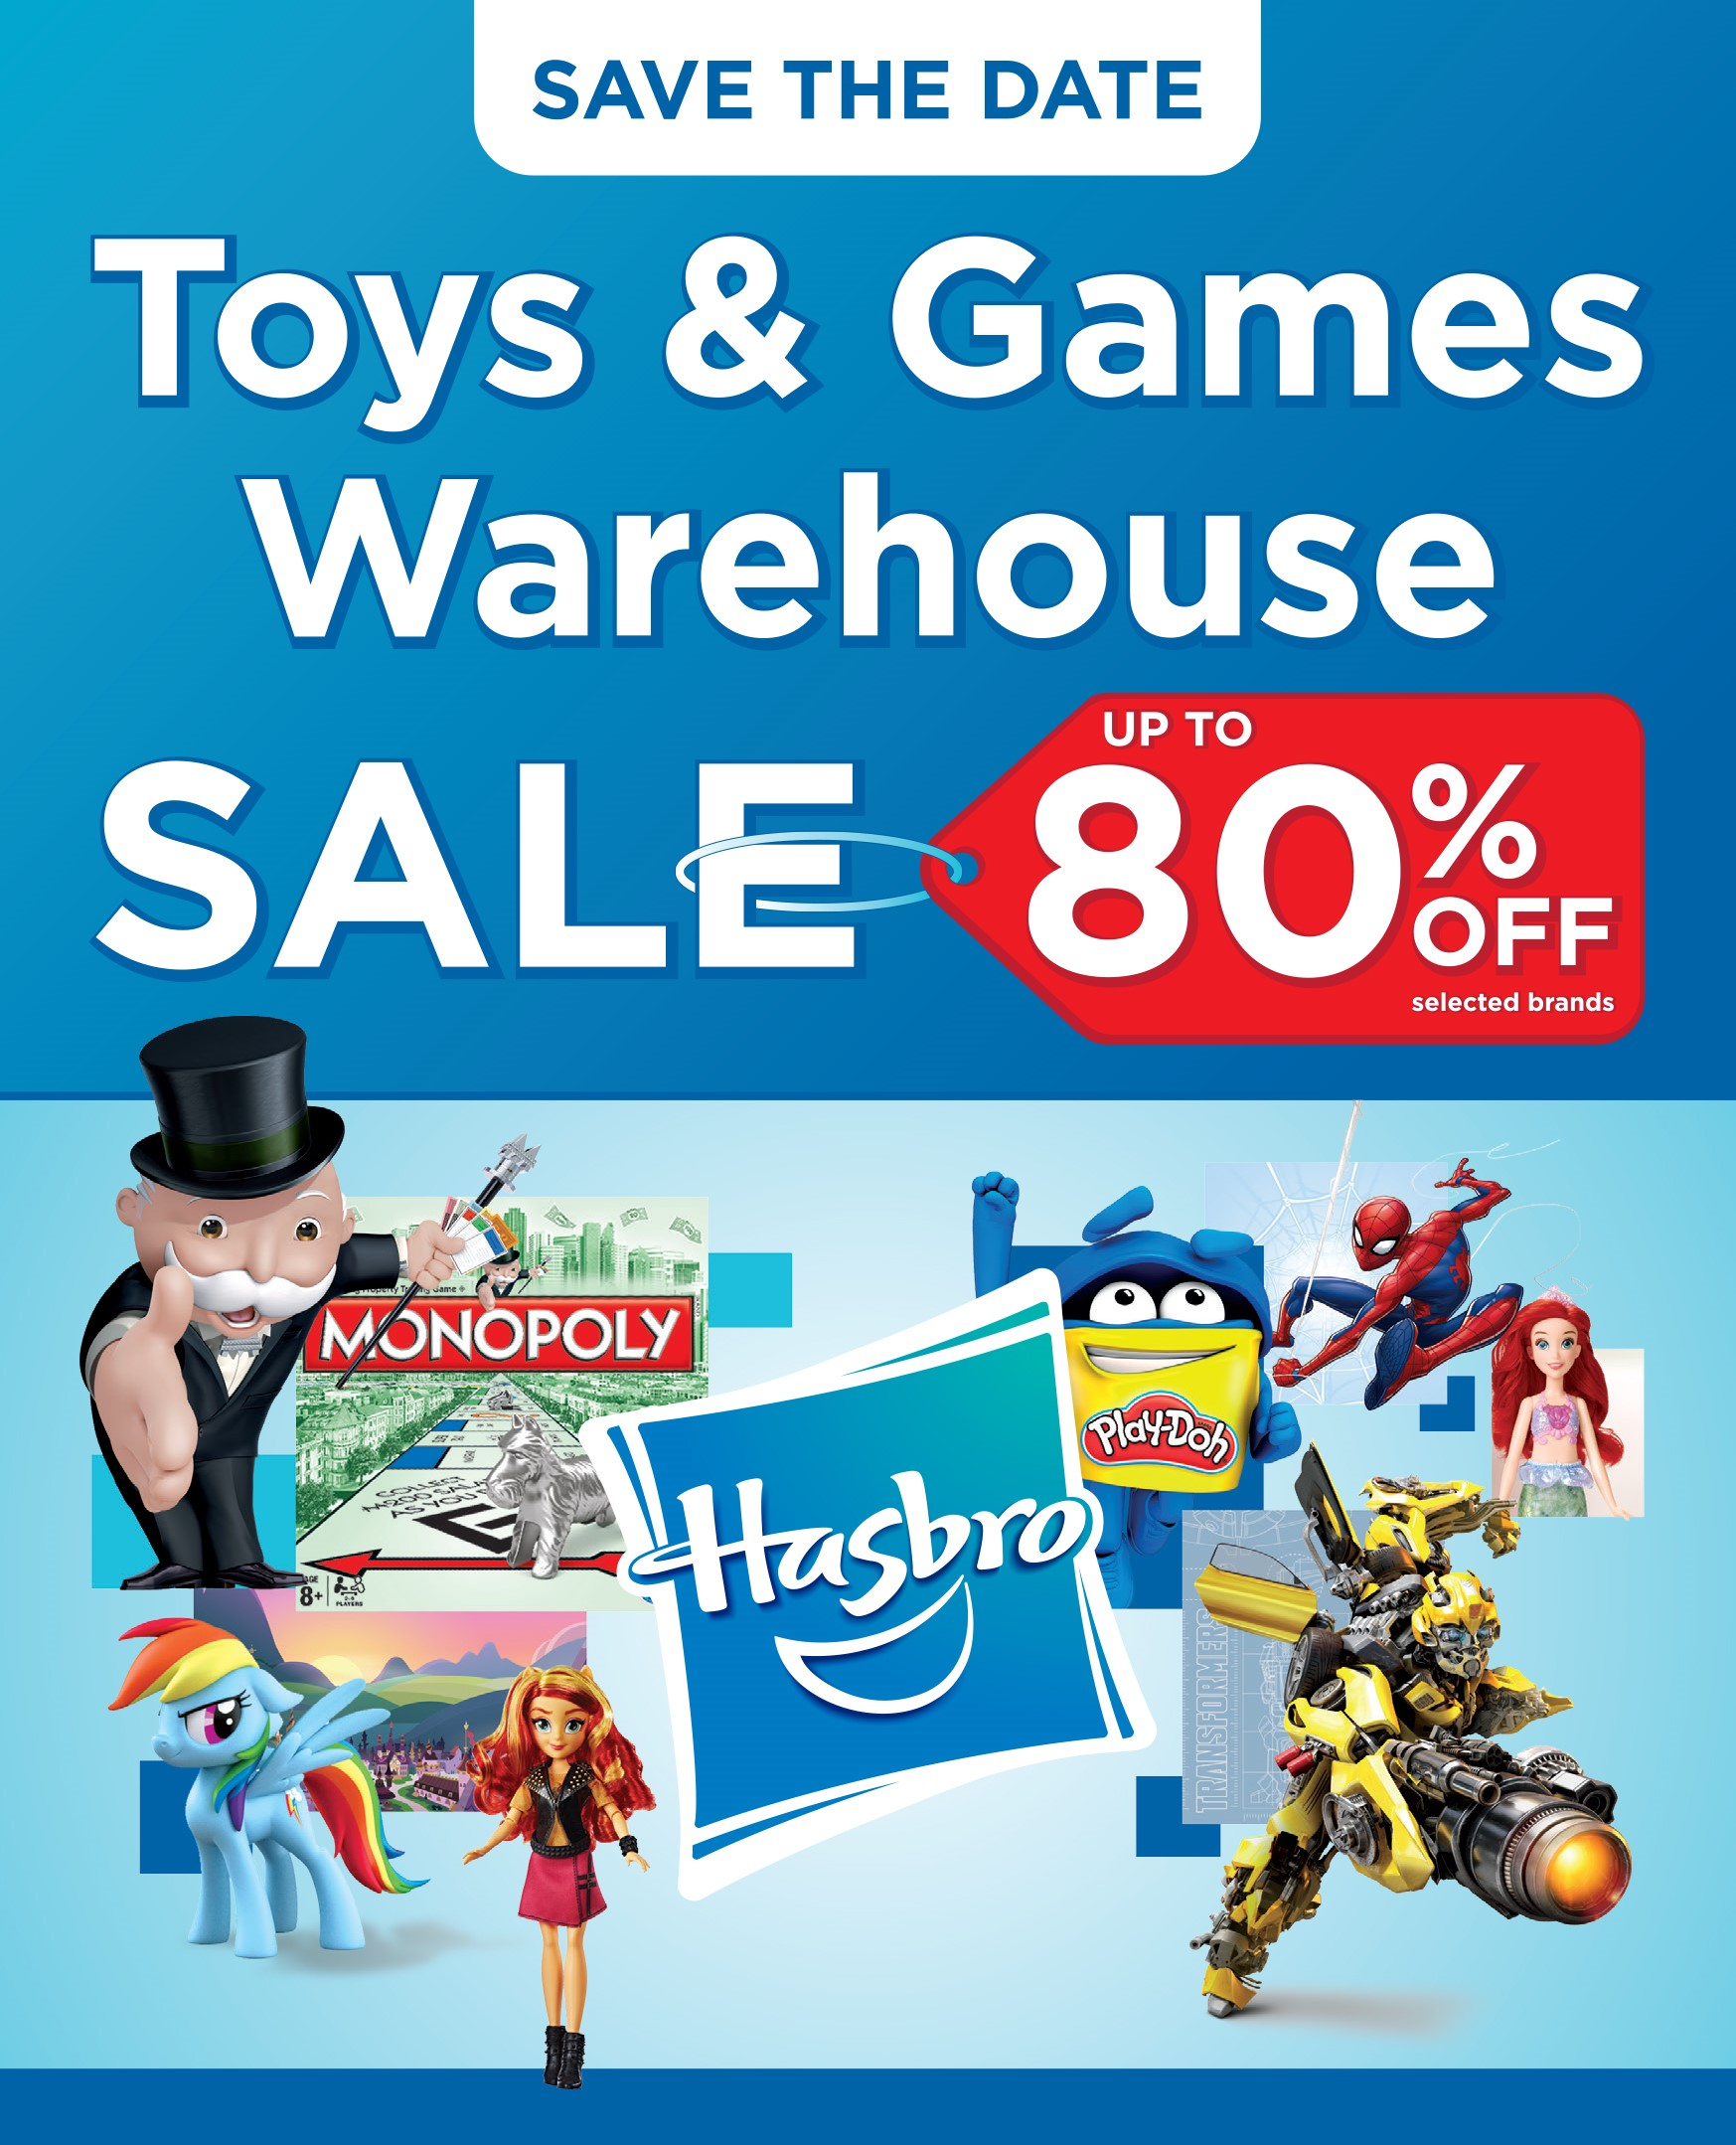 Calling All Hasbro fans! – 80% off warehouse sale